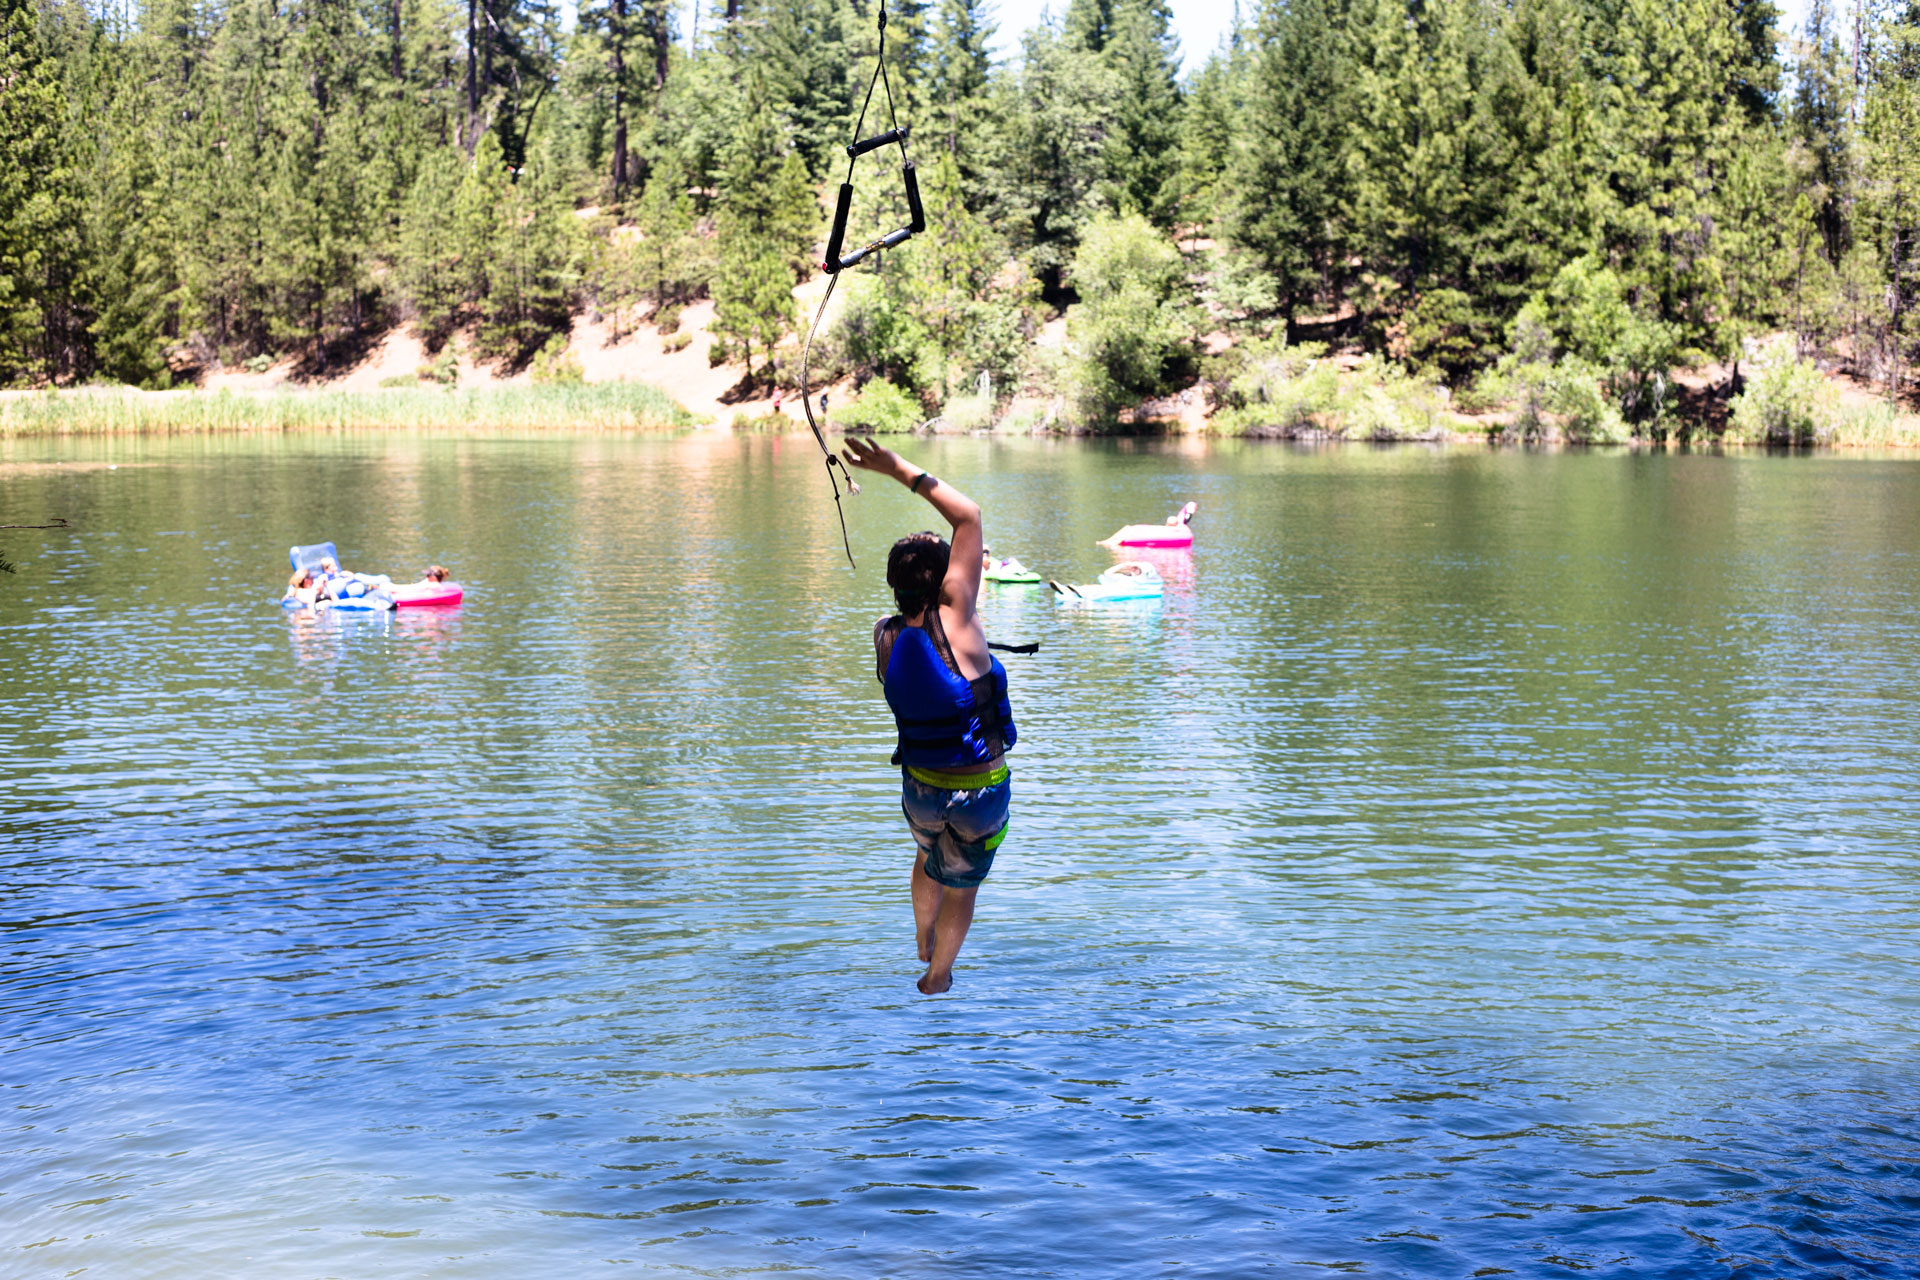 view from behind of boy flying from a rope swing into the lake